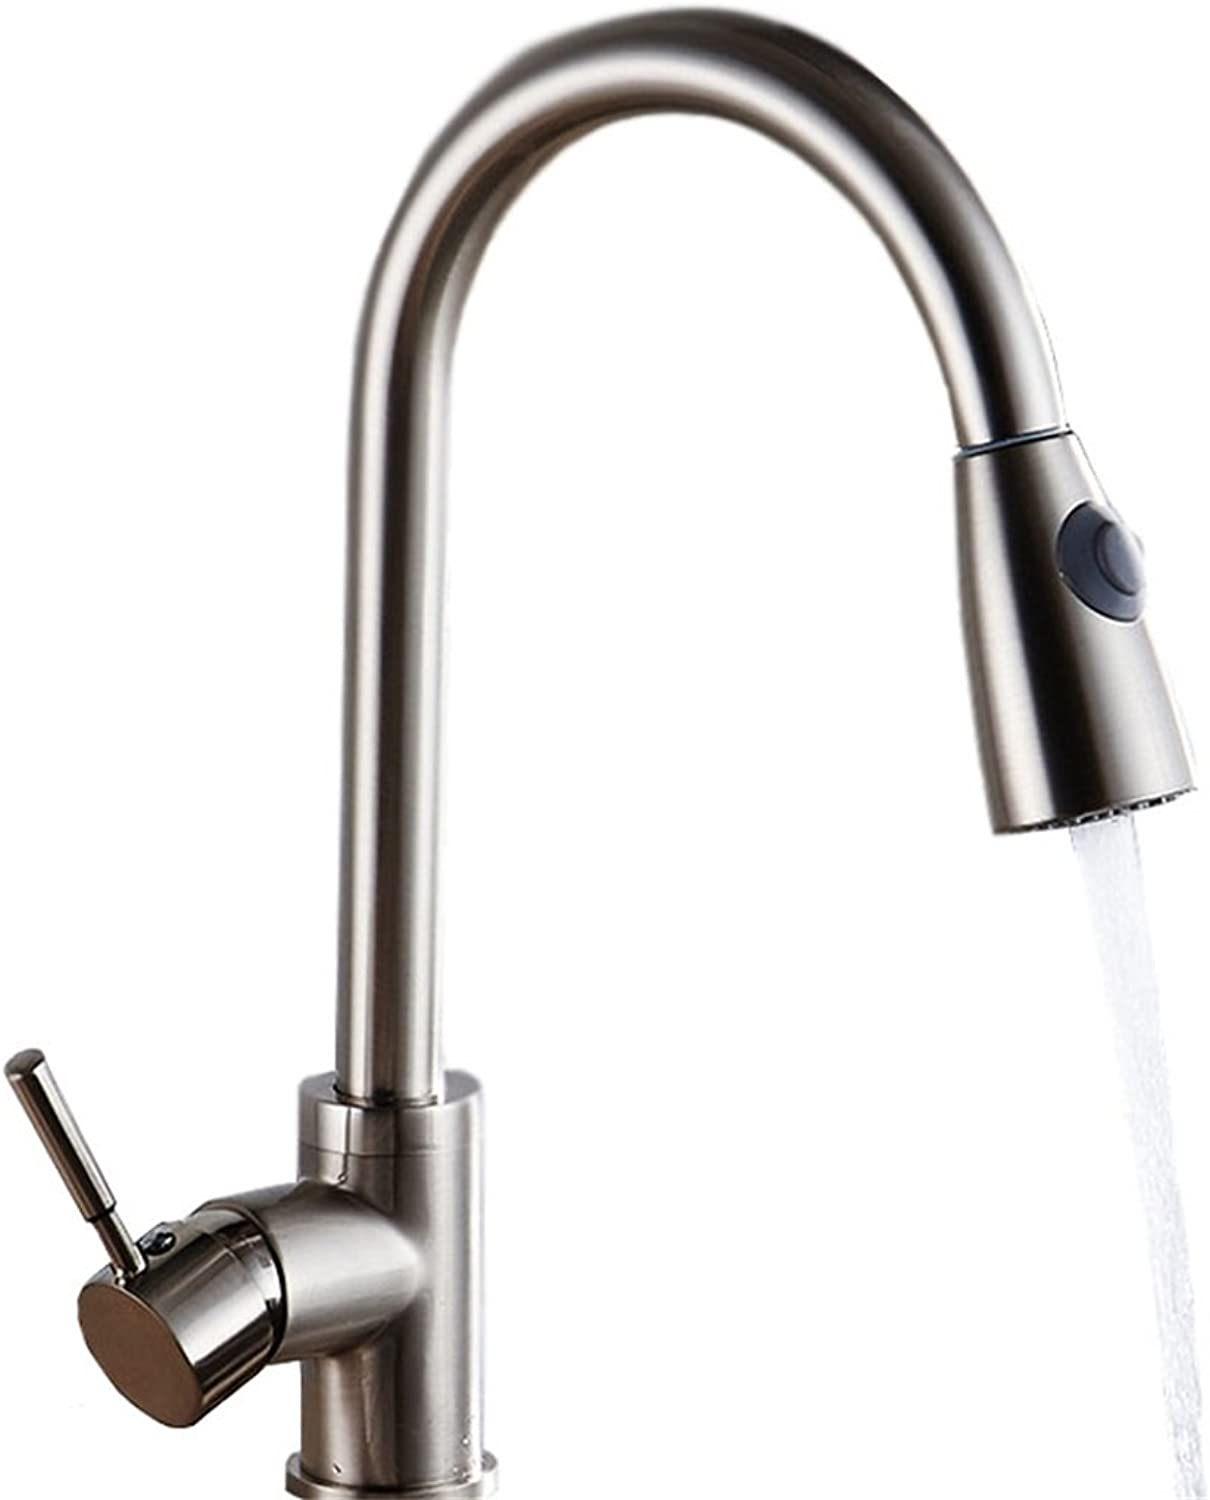 LXYU Sus304 Telescopic Double Temperature Pull-Type Sink Faucet Kitchen Hot And Cold Water Faucet Universal redating Sink Faucet